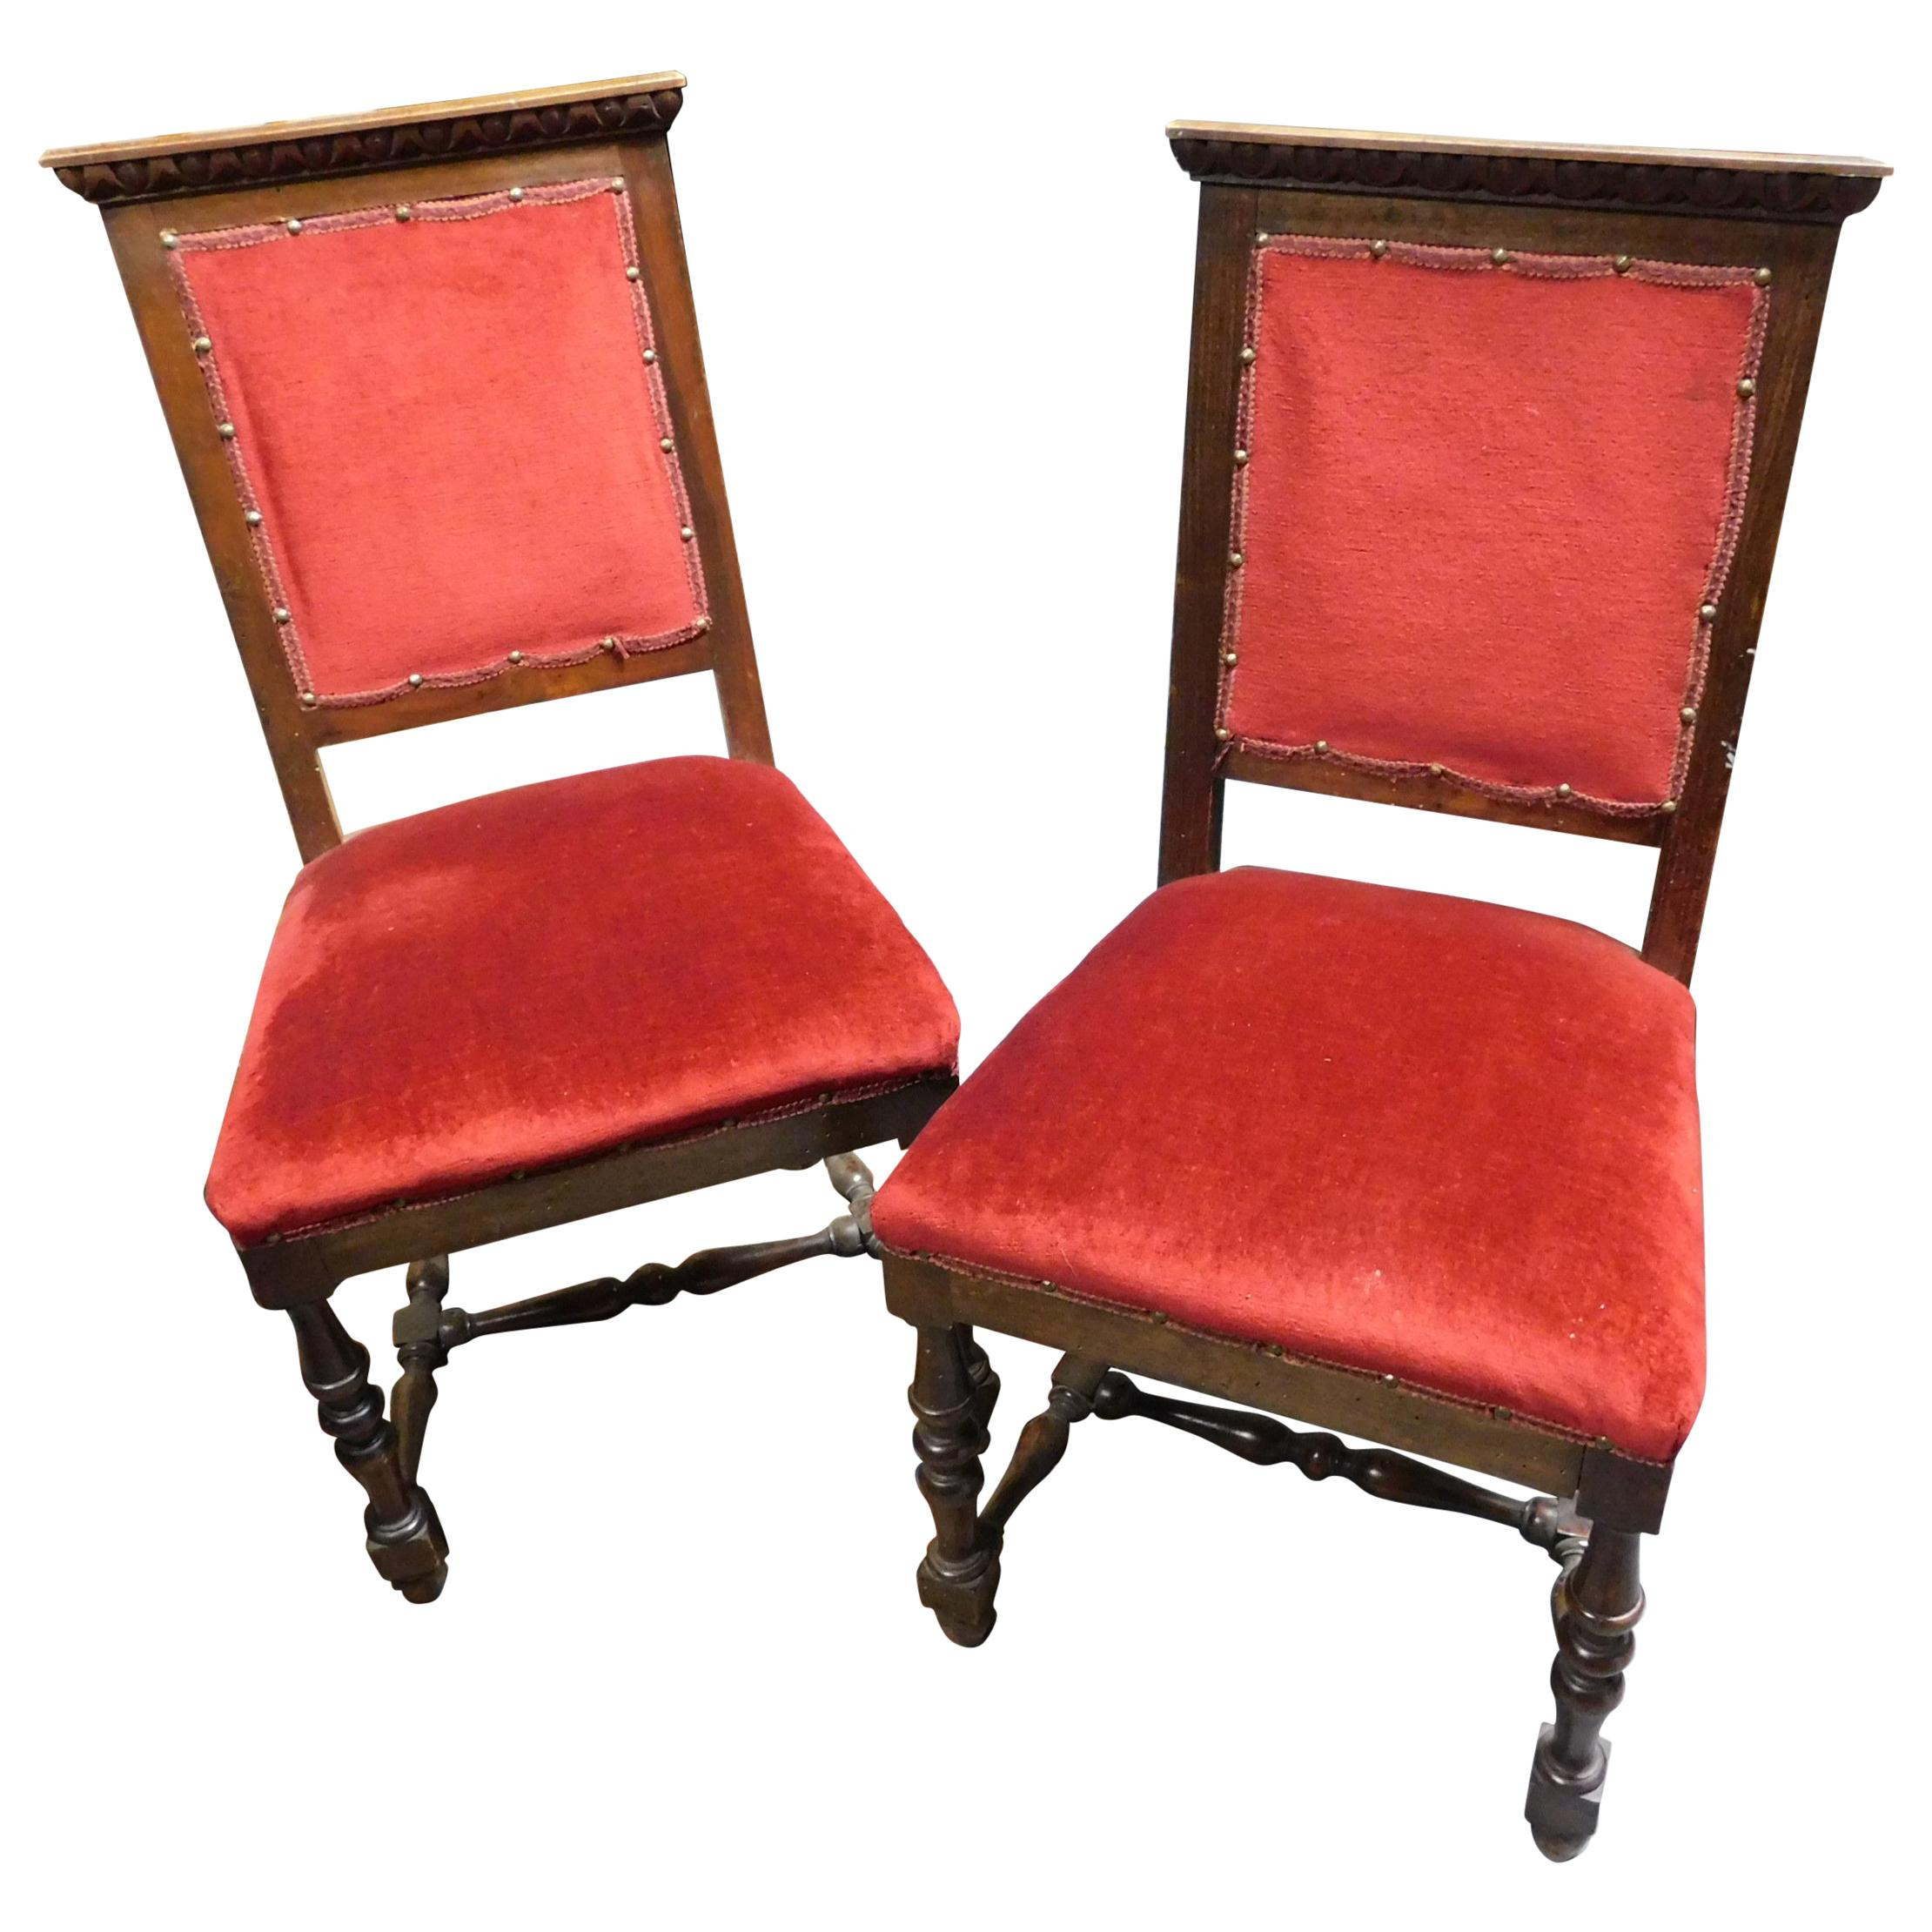 19th Century Pair of Chairs, Armchairs, Red Velvet, Wood with Frames, Italy